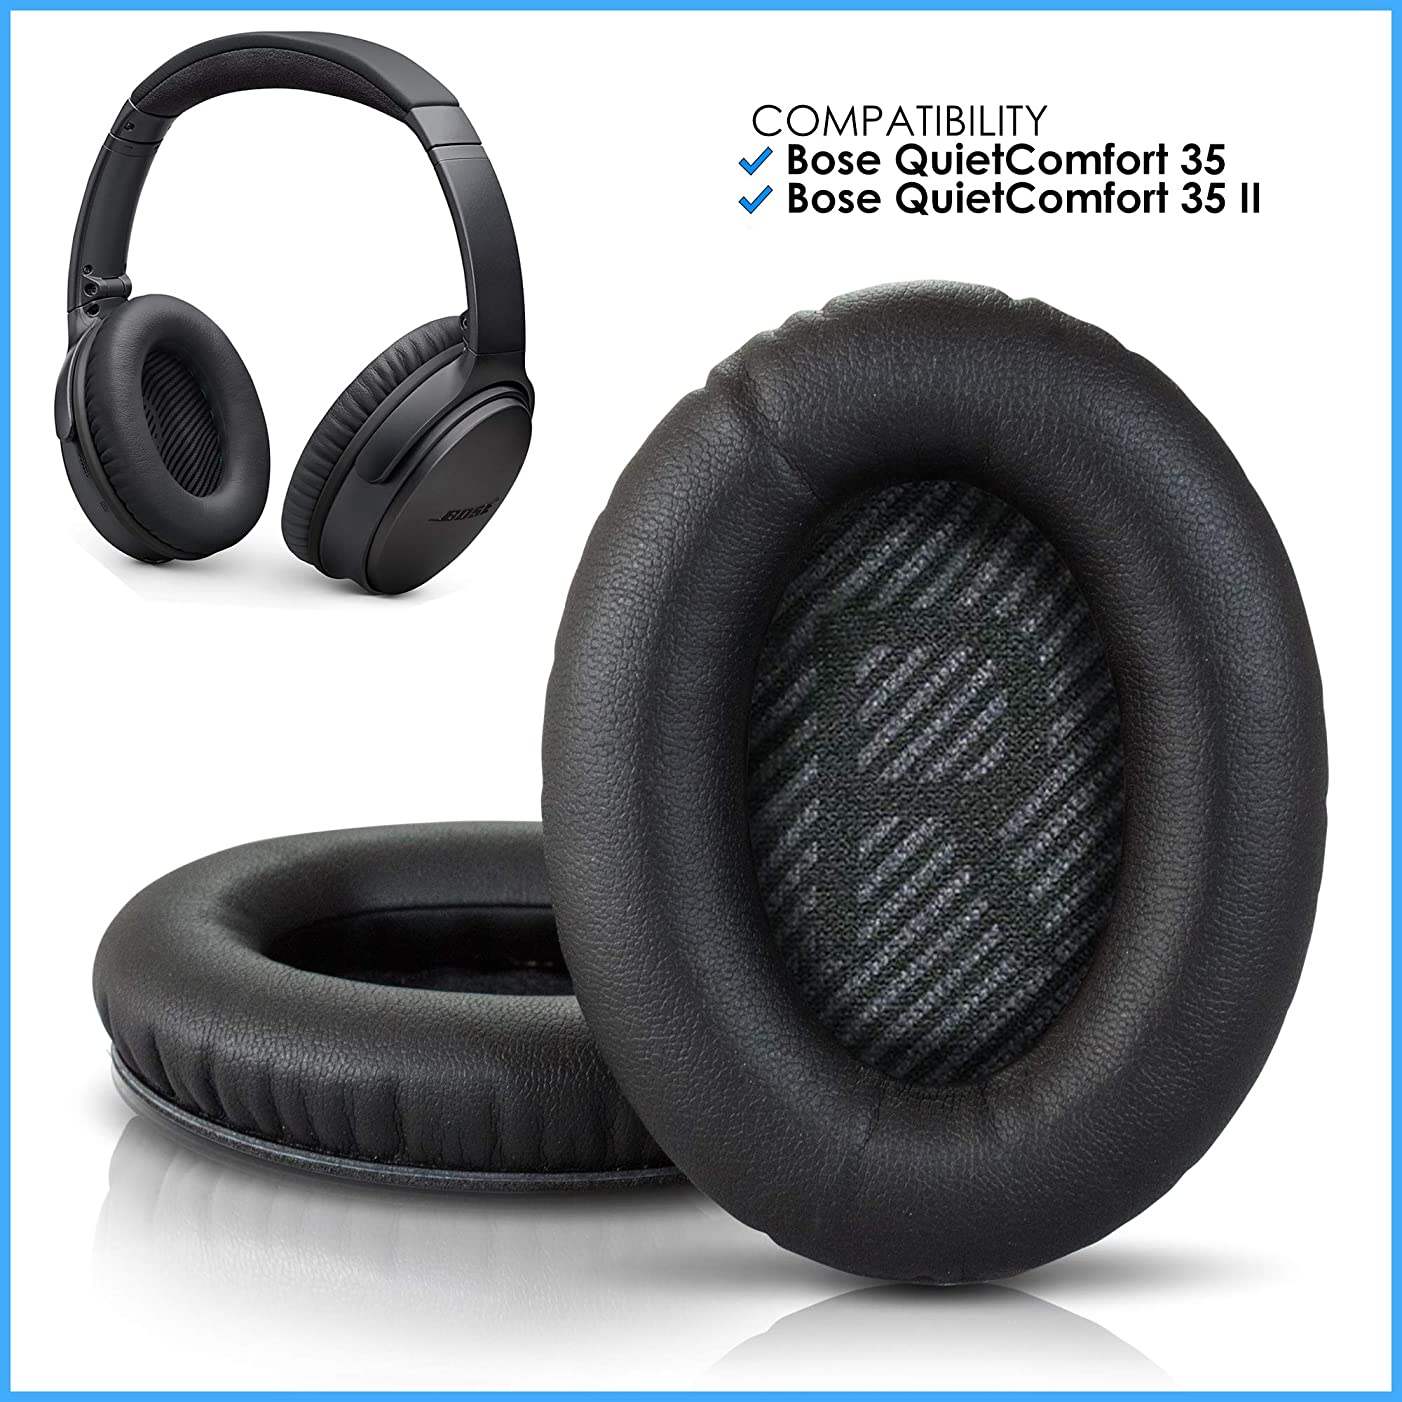 Wicked Cushions Premium Bose QC35 Replacement Ear Pads - Compatible with QuietComfort 35 & 35 ii   Black